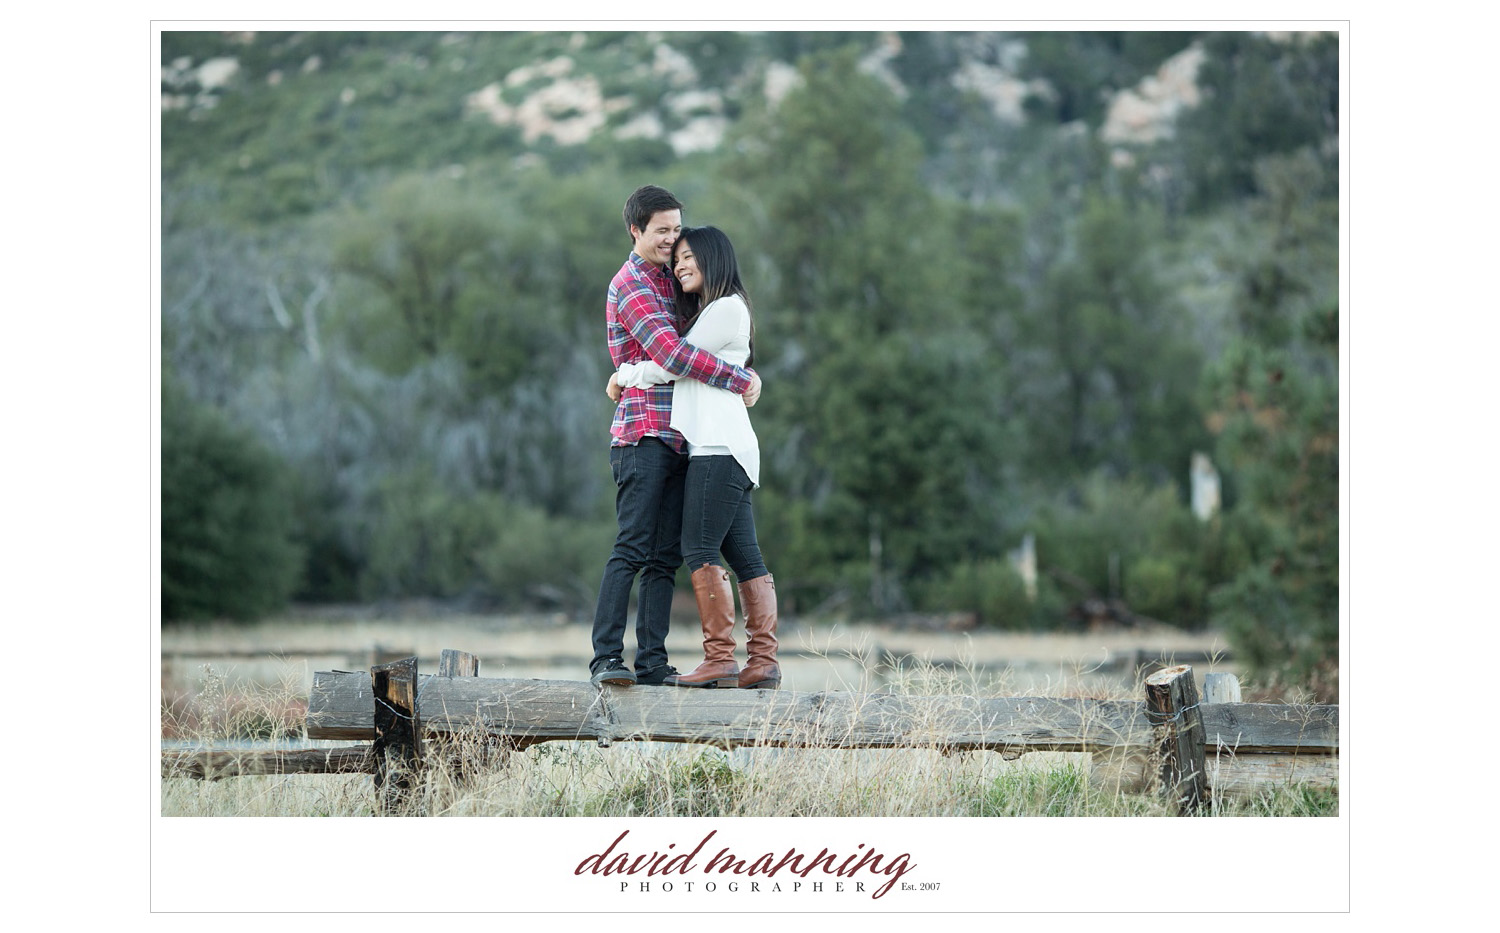 Del-Mar-Ramona-Julian-Engagement-Photos-David-Manning-Photographers-0018.jpg